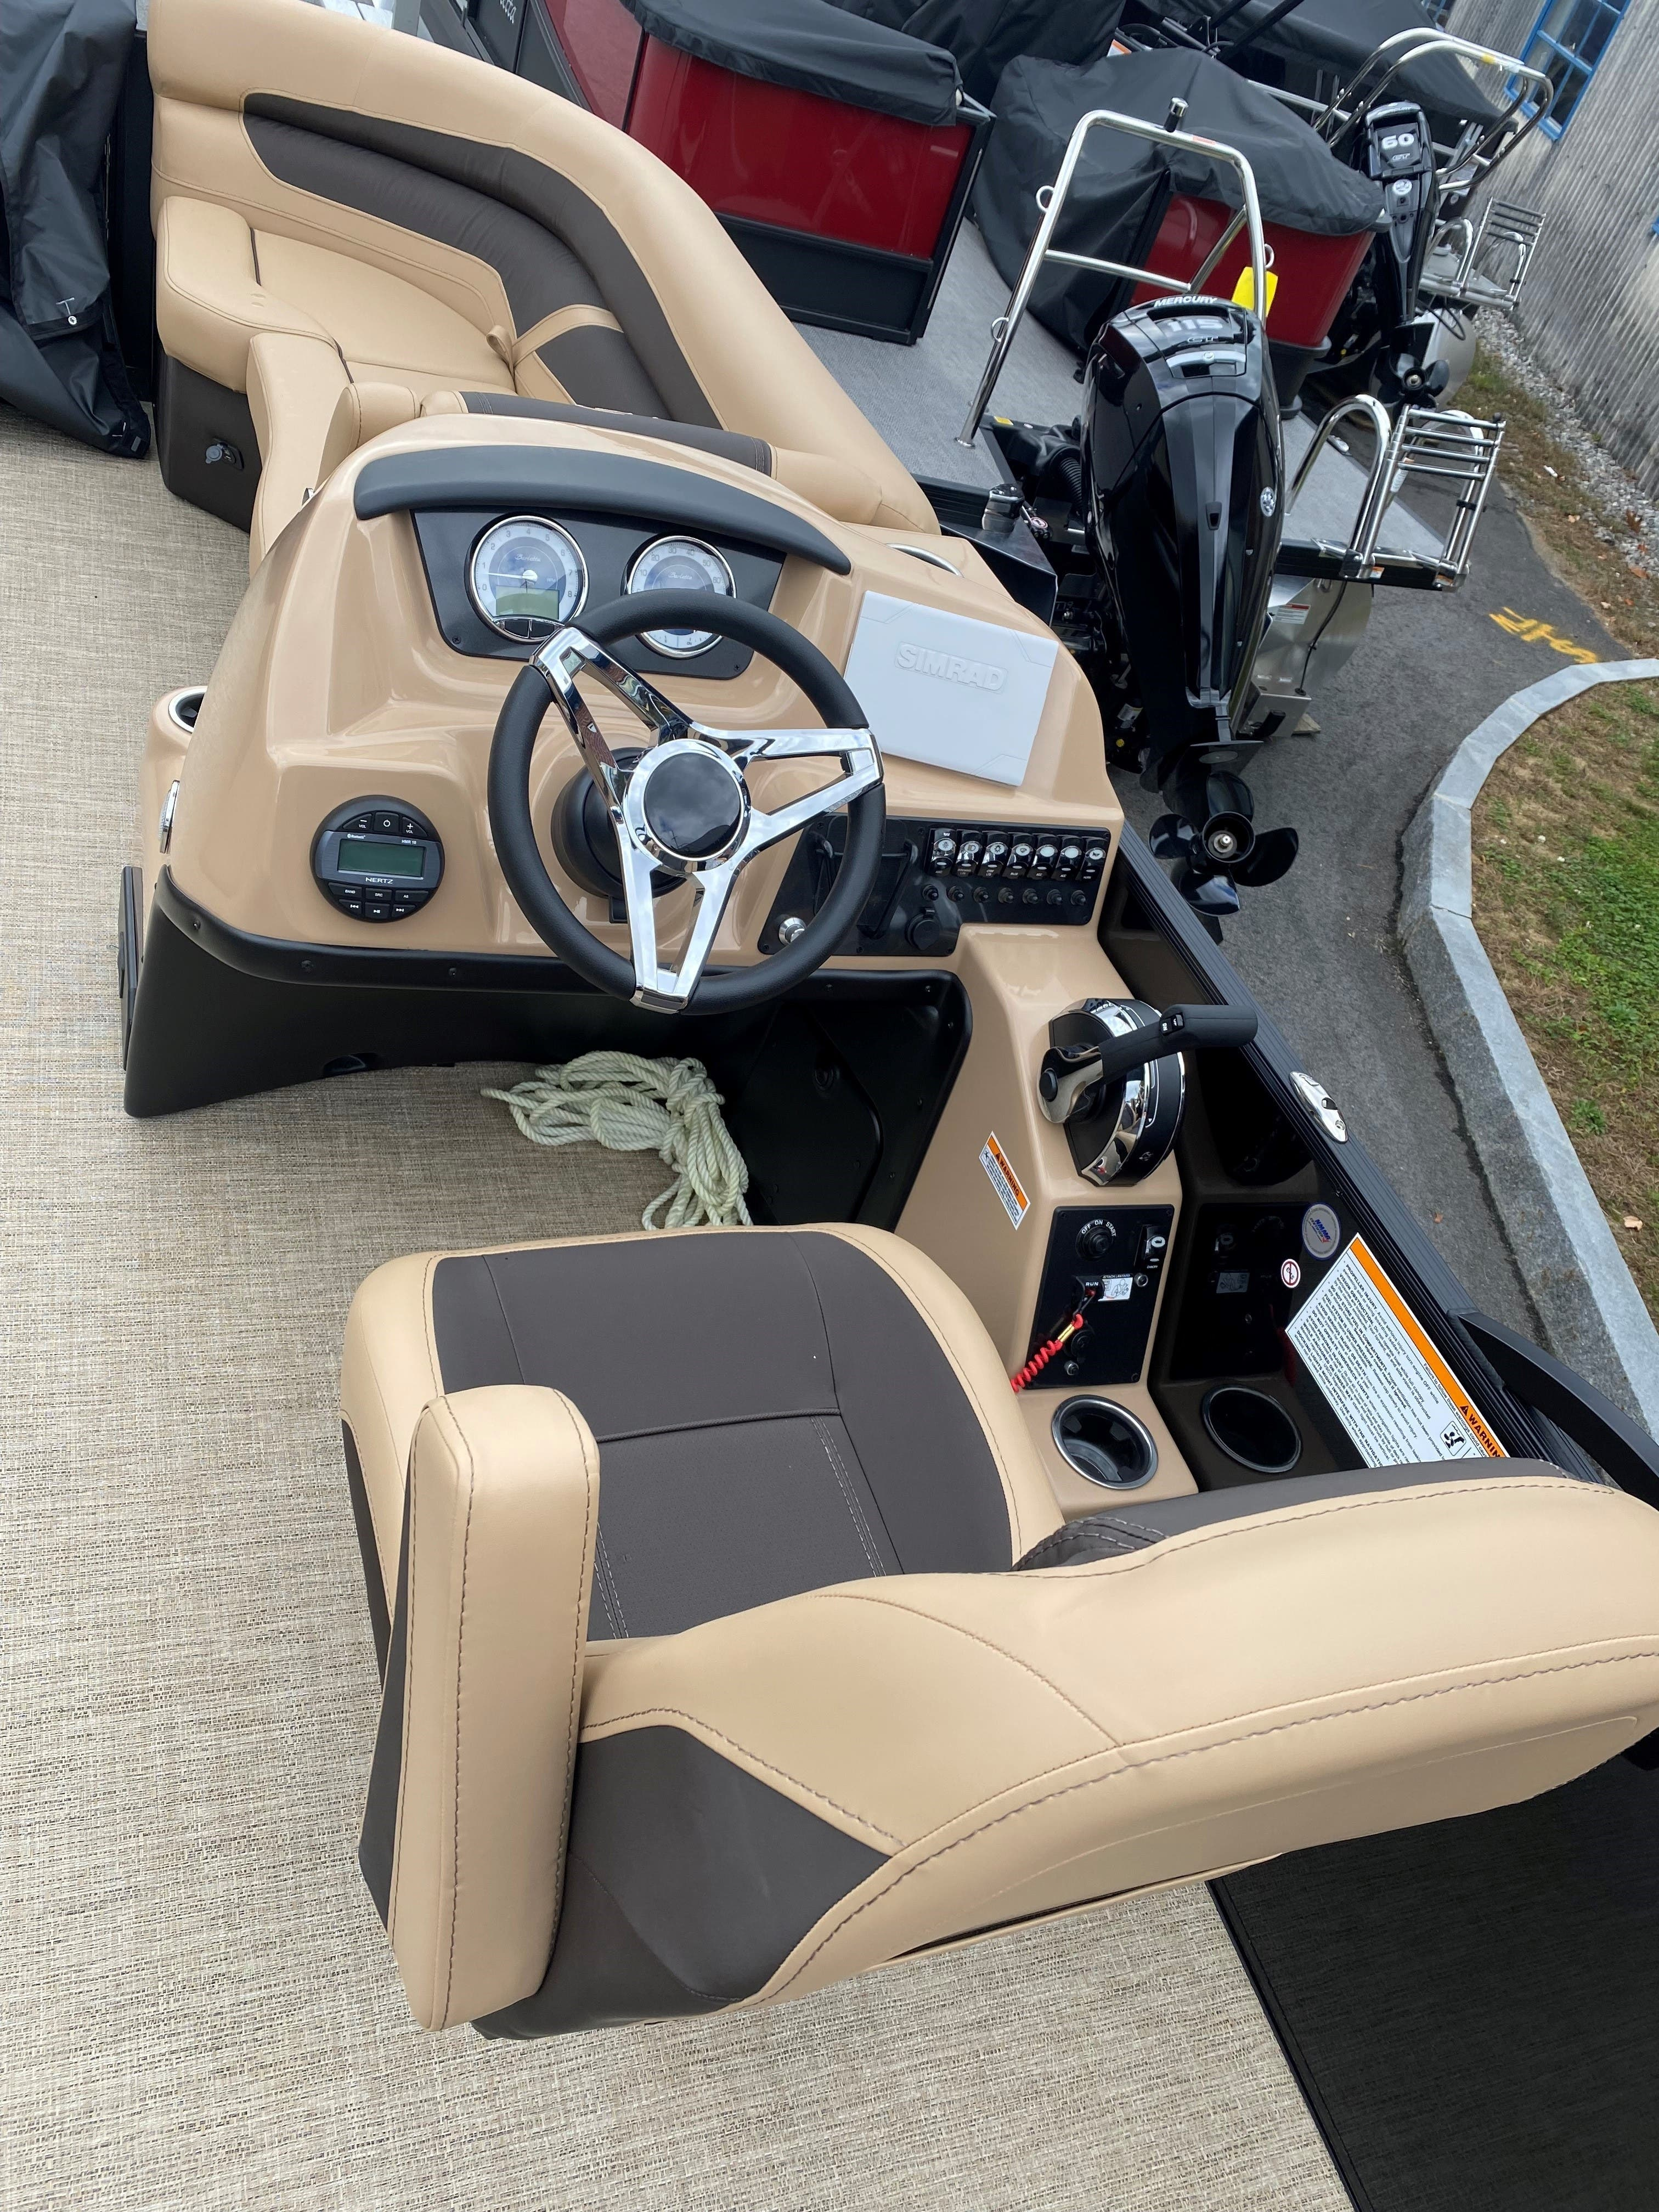 2022 Barletta boat for sale, model of the boat is C22UC & Image # 10 of 12